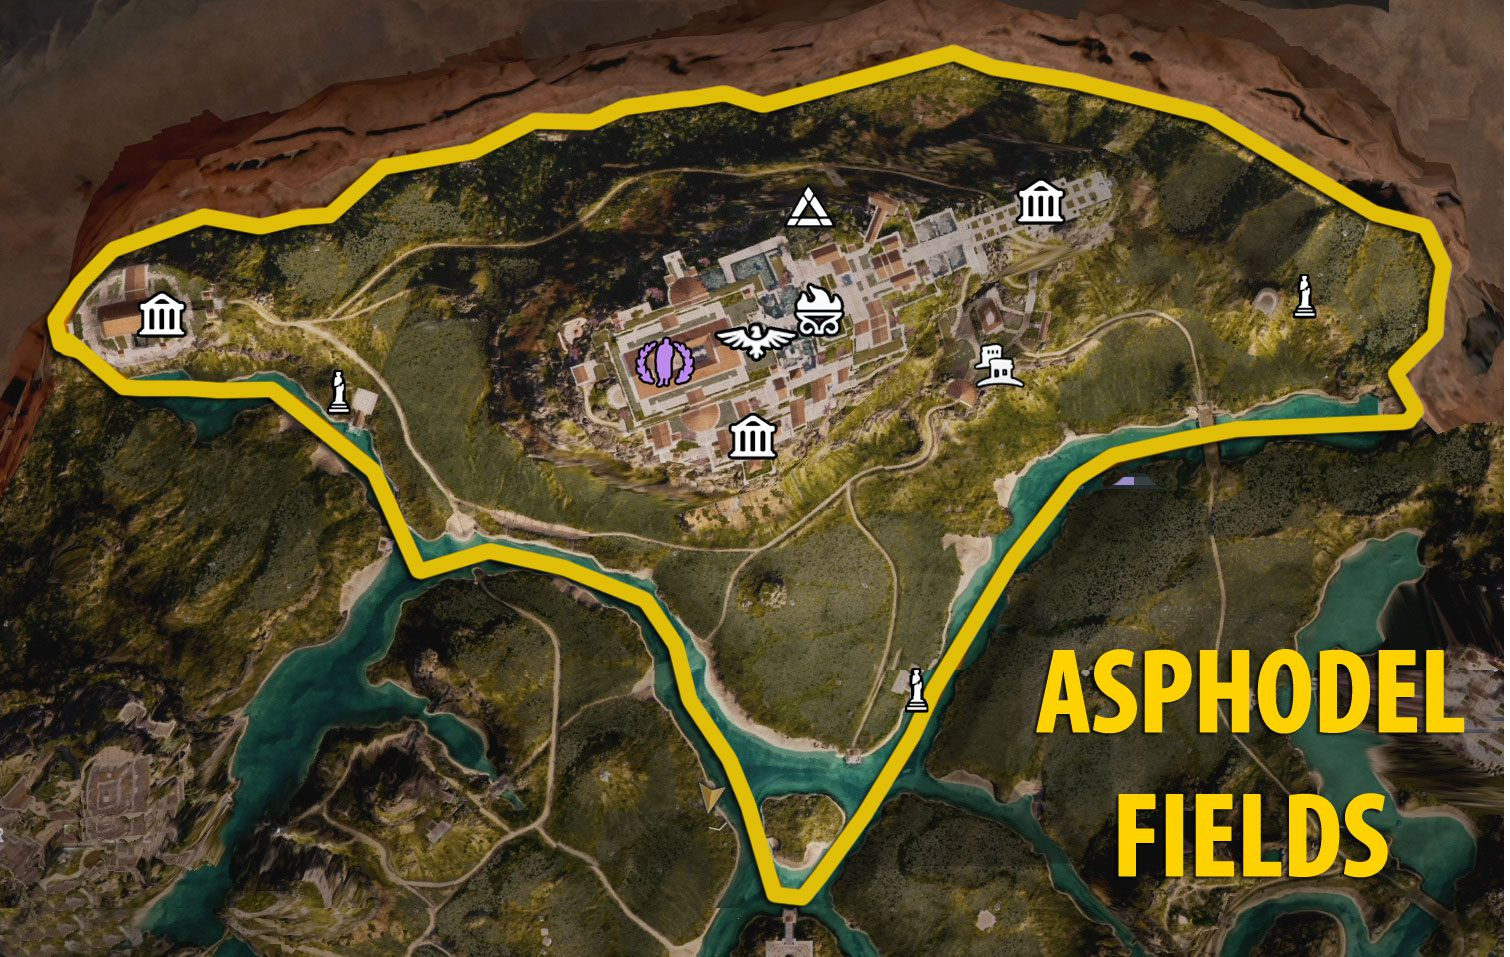 Asphodel Fields - Fate of Atlantis DLC Map - Assassin's Creed Odyssey